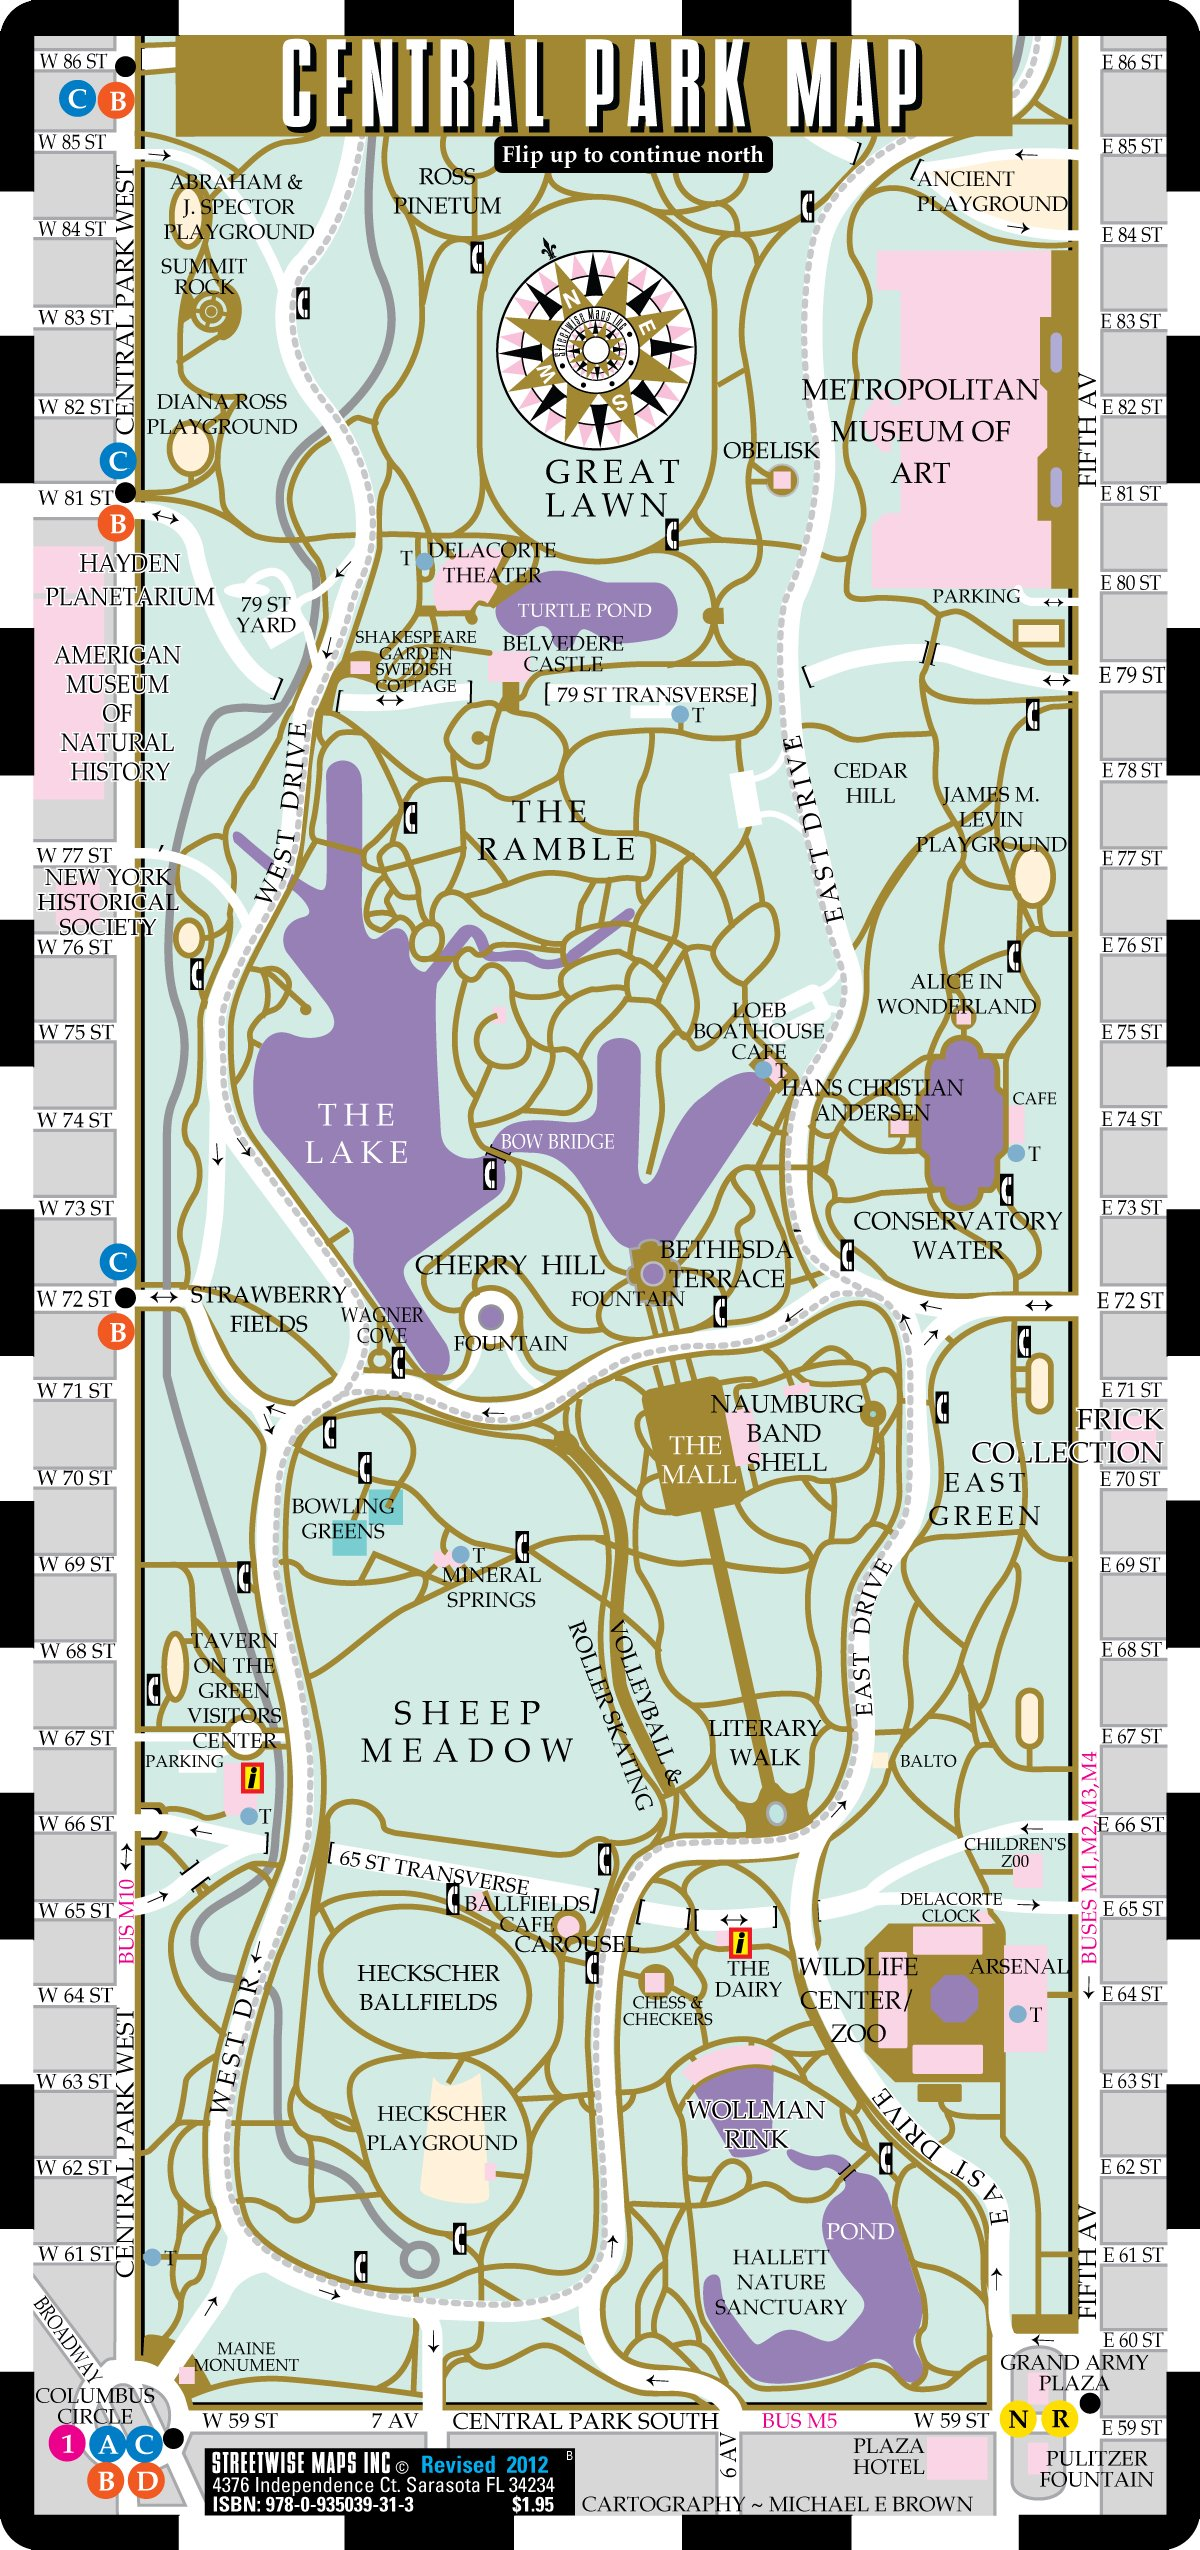 Streetwise Central Park Map - Laminated Pocket Map of Central Park on